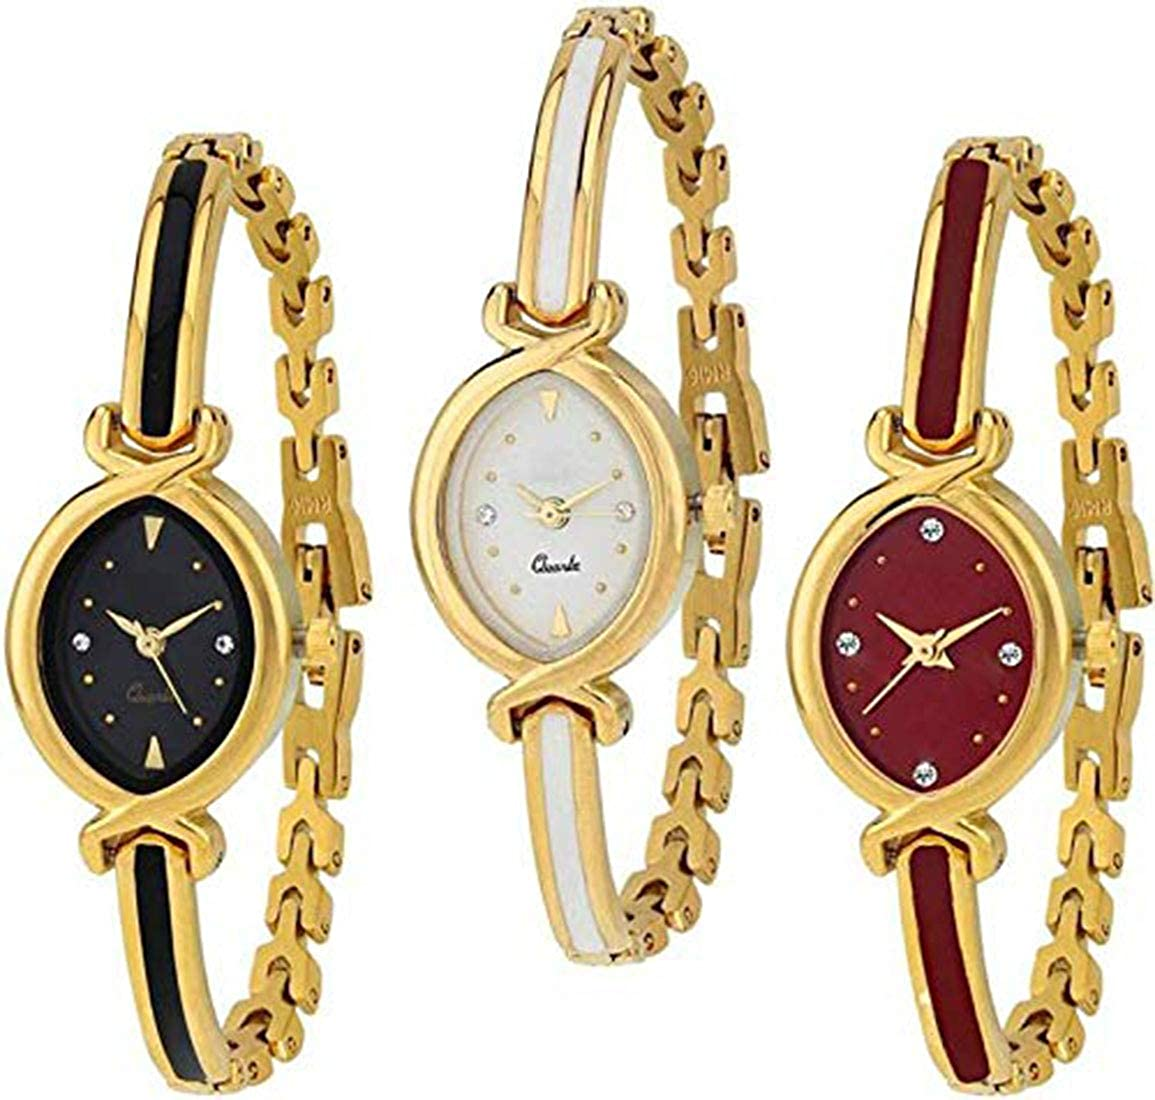 acnos-gold-chain-analog-watches-combo-for-women-pack-of-3